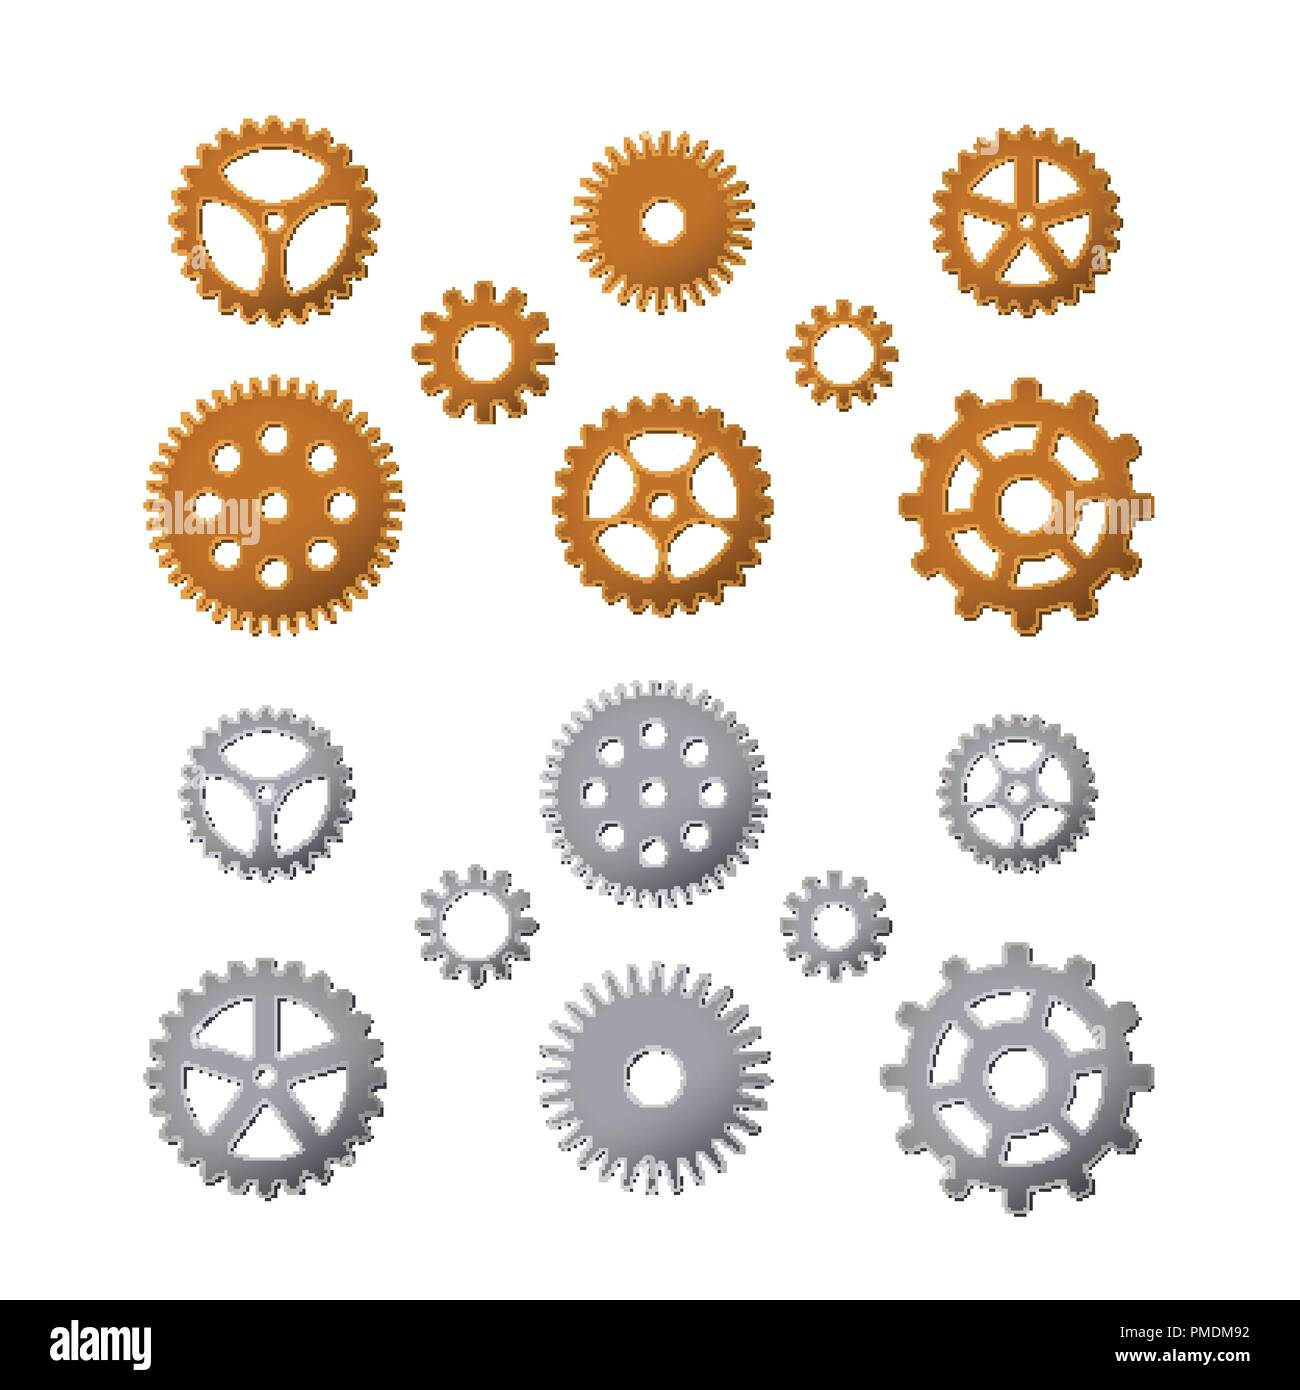 Set of gears. Brass and steel. Vector illustration. Details of cars and watches. Steampunk design. - Stock Vector